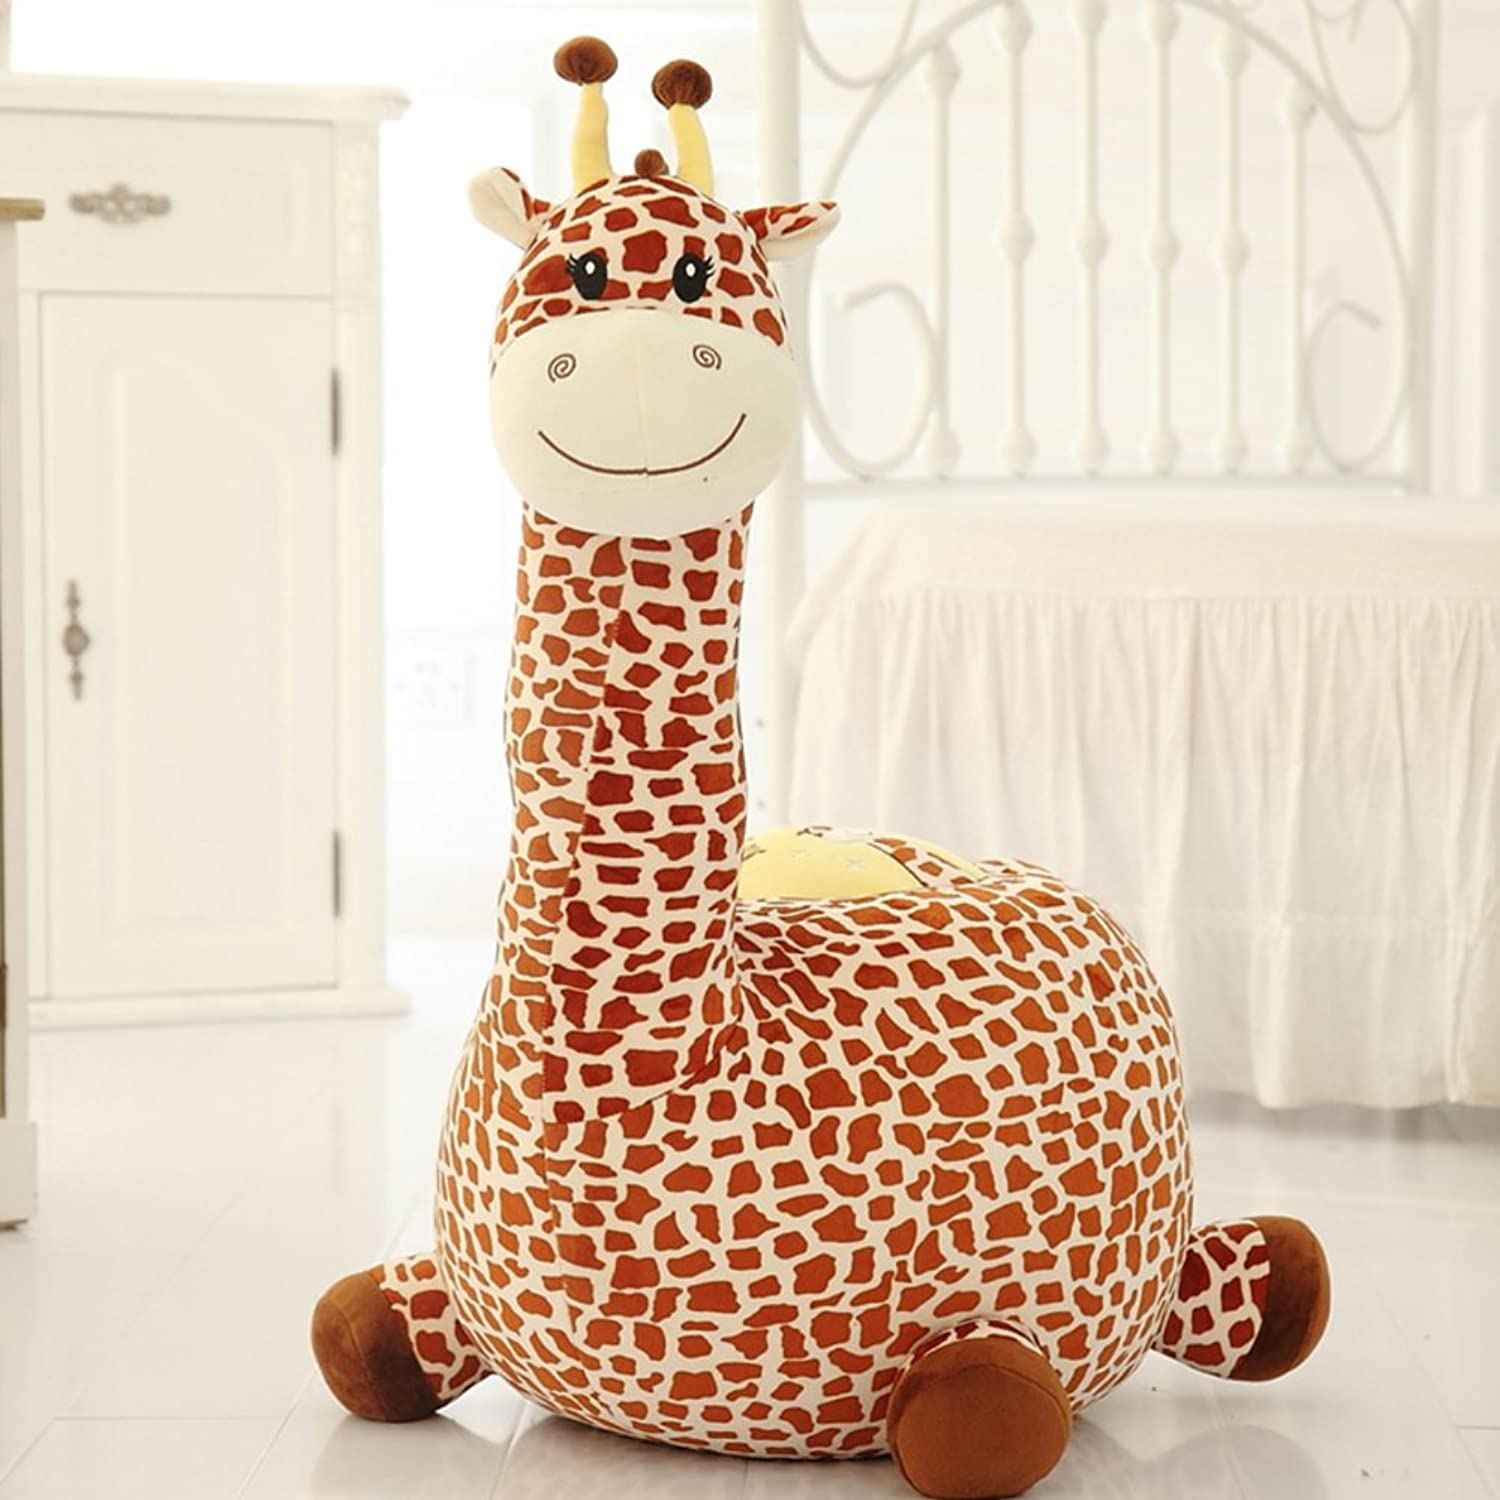 Kids Giraffe Sofa Stool,Creative Cute Lazy Seat Chair Upholstered shoes Stool-D L85xW50cm